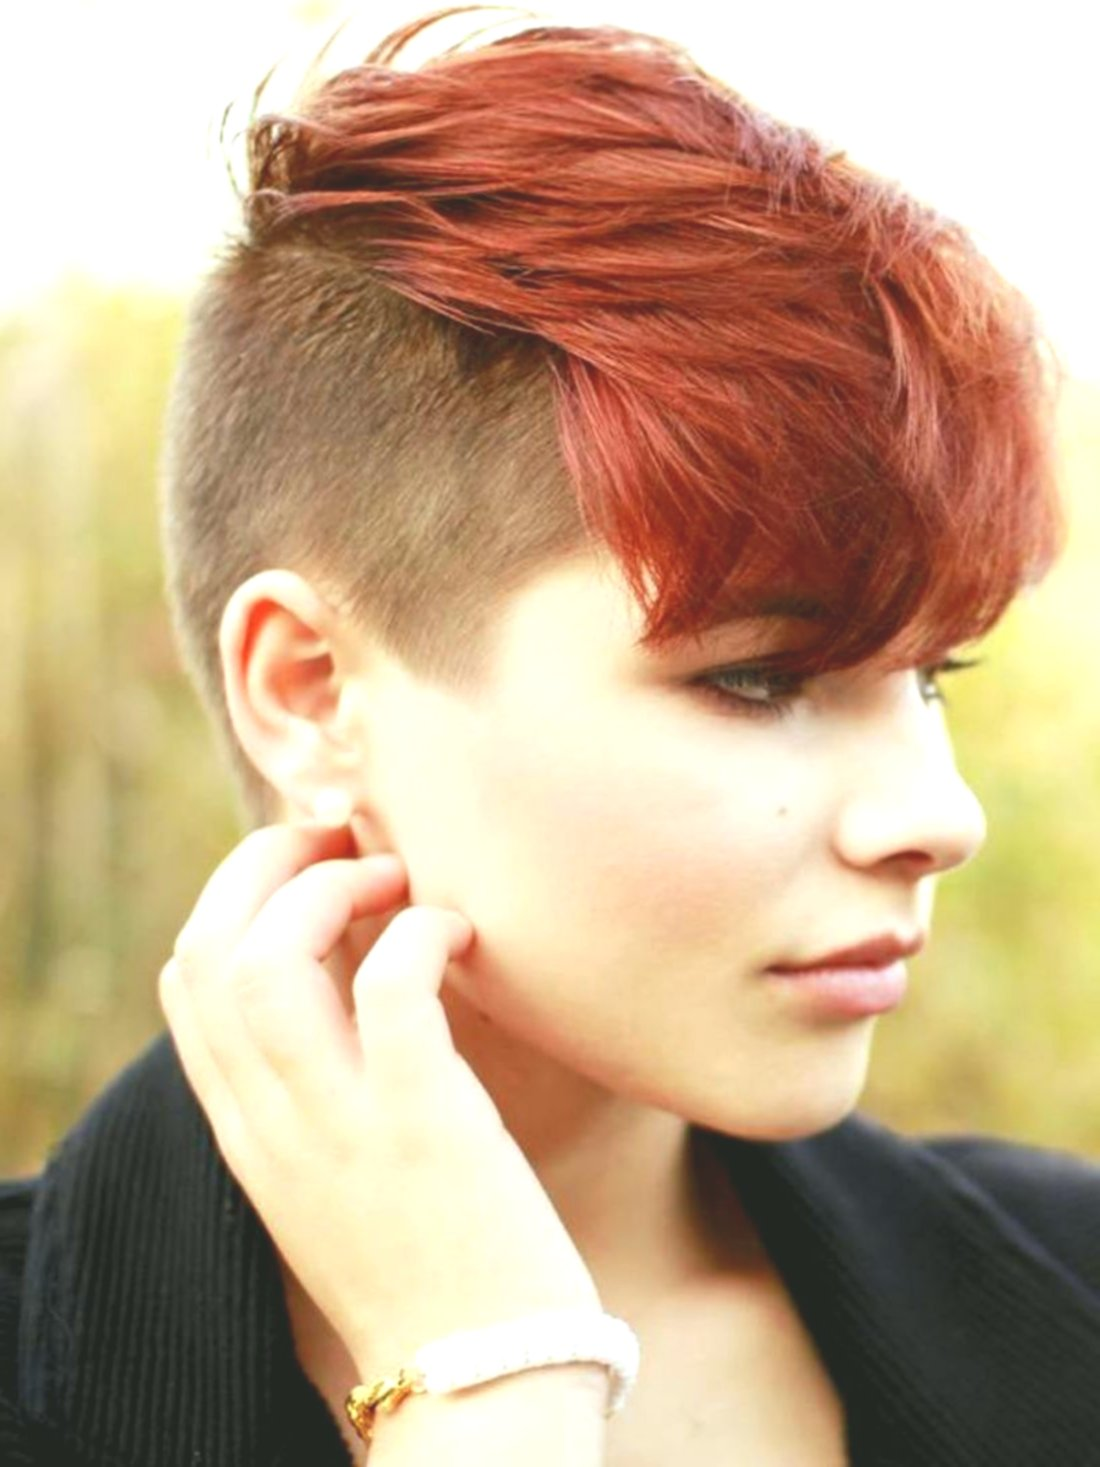 new side hairstyles ideas - Cute Side Hairstyles gallery